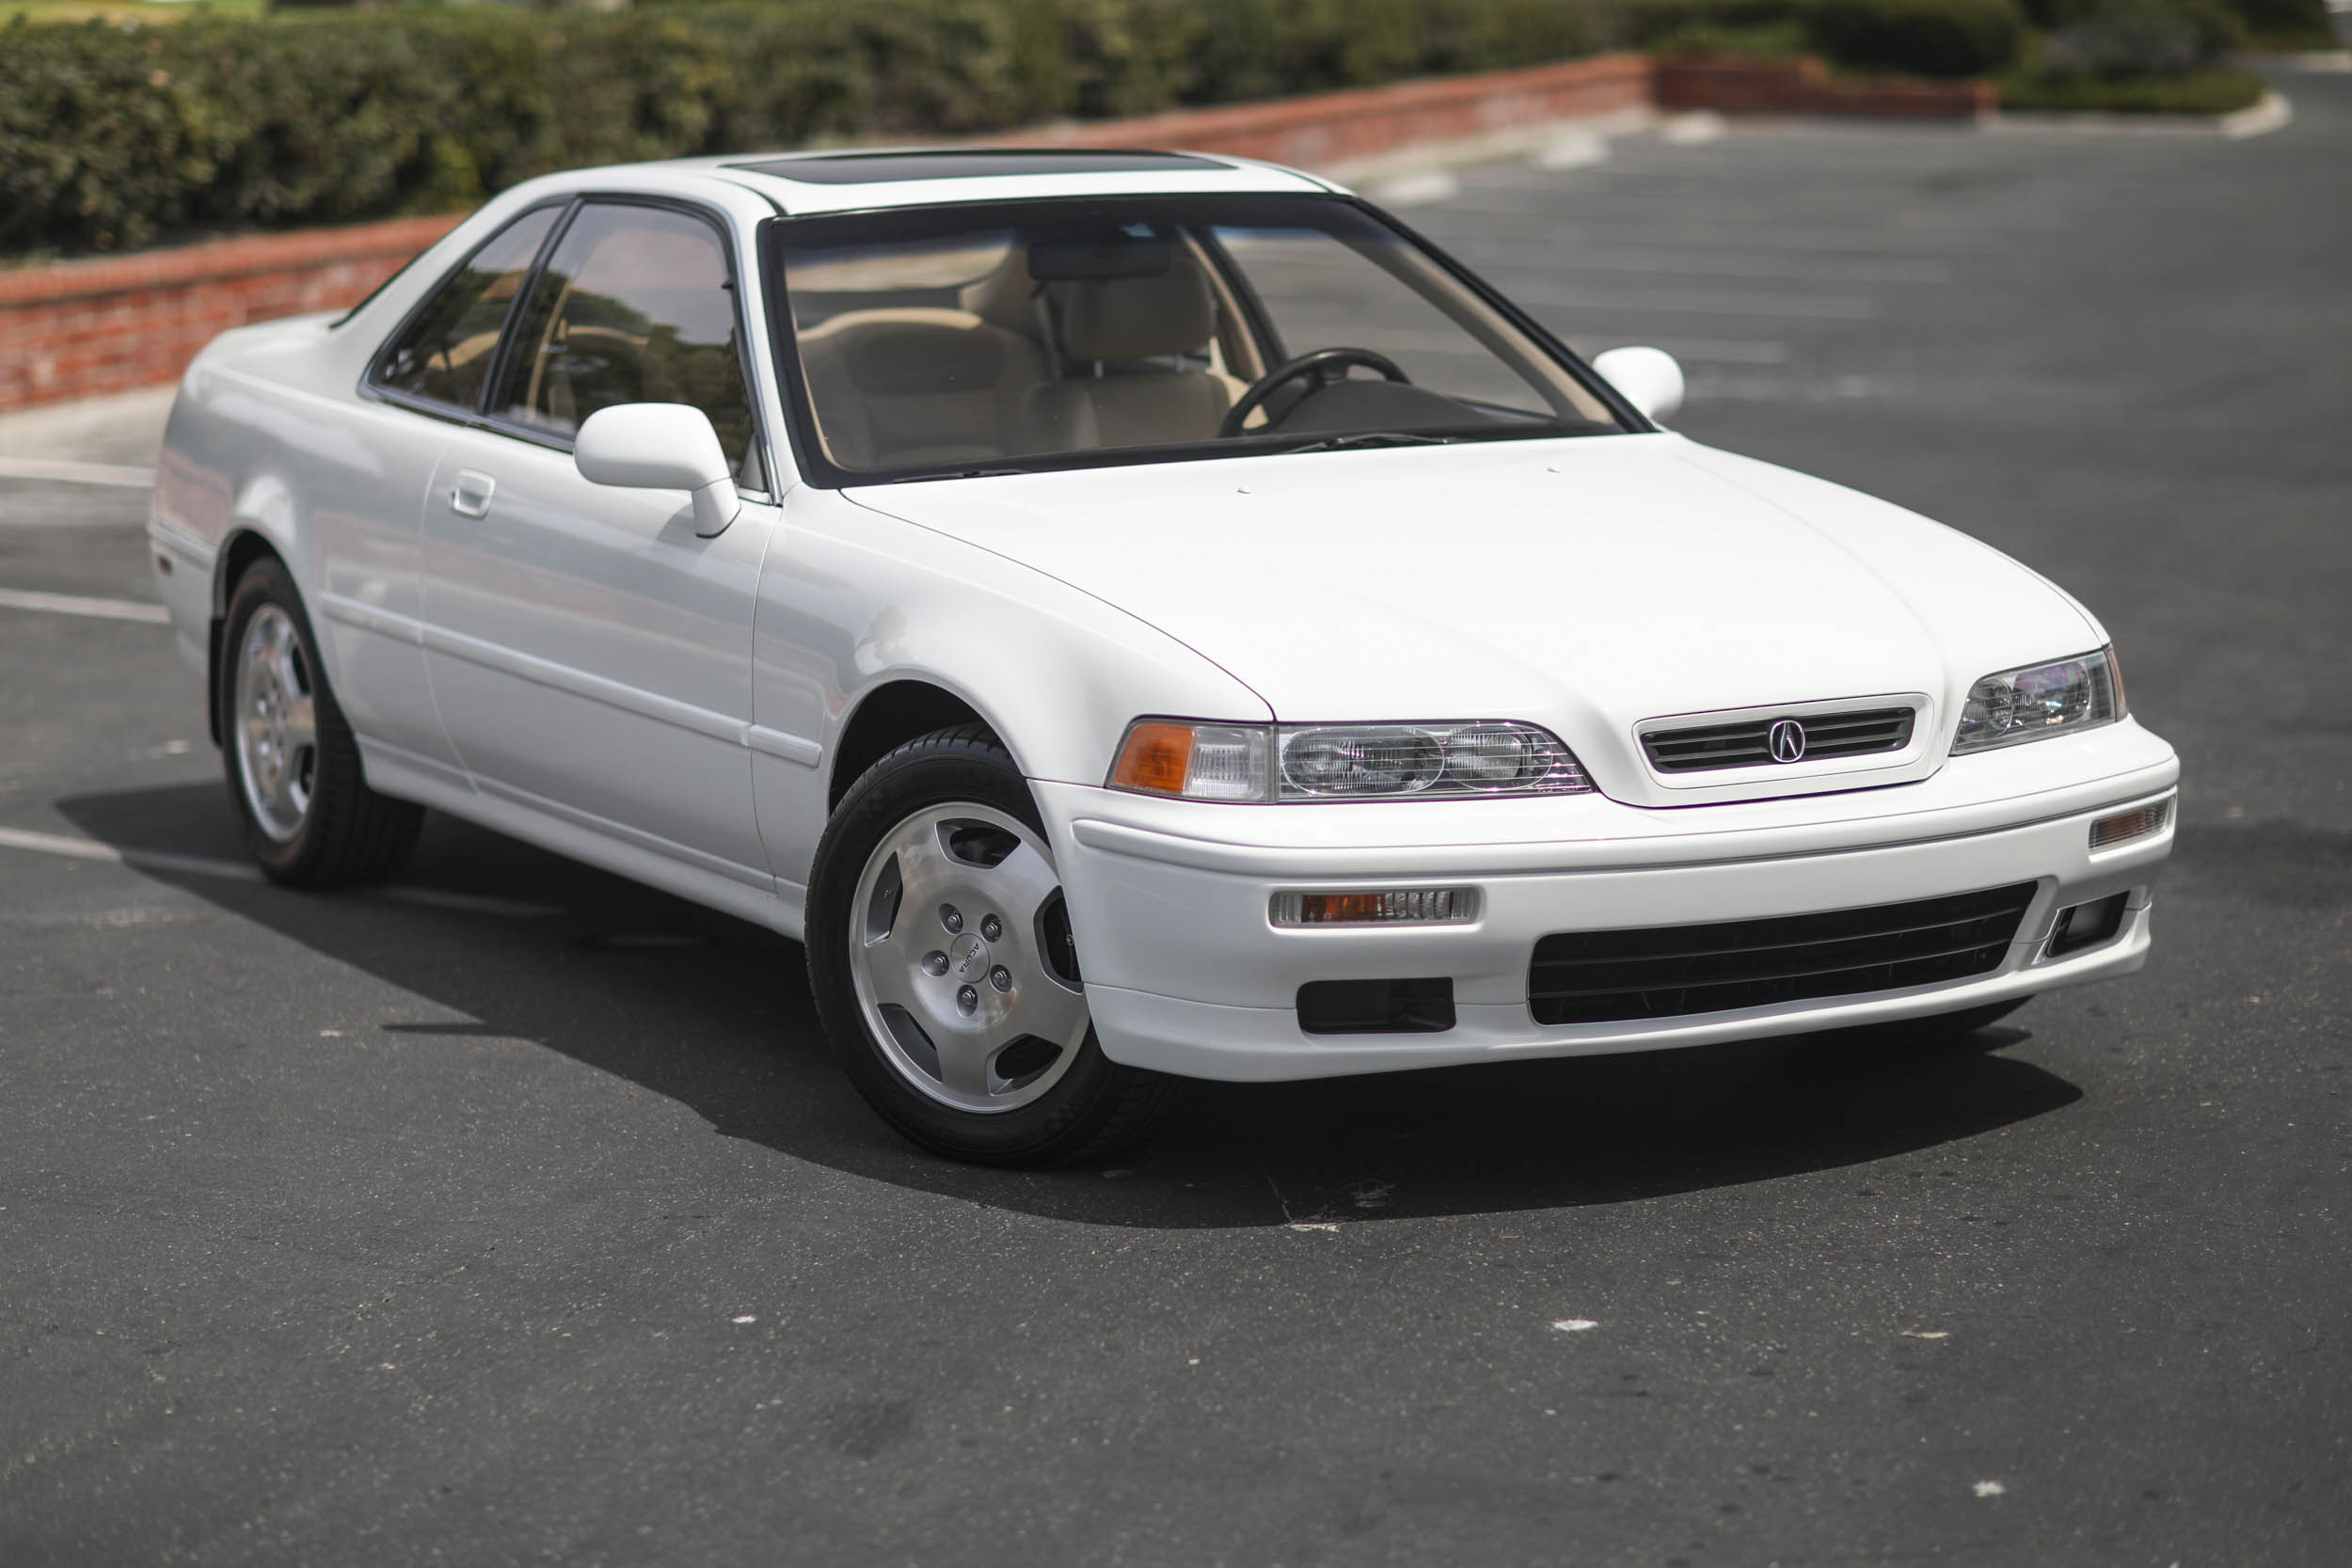 1994 Acura Legend Coupe LS front 3/4